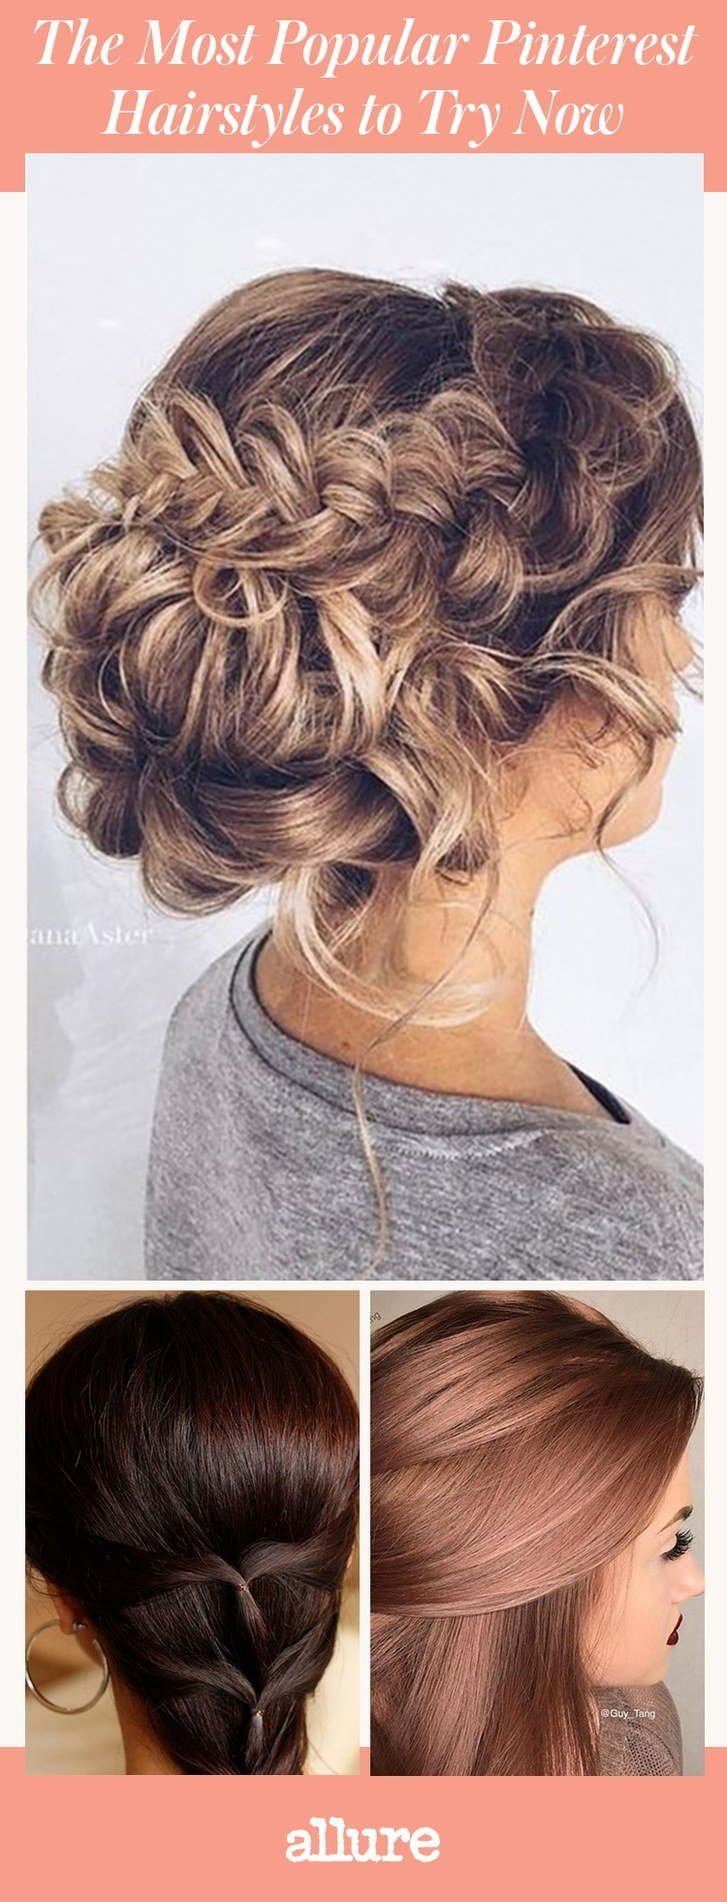 New The Most Popular Pinterest Hairstyles To Try Now Allure Ideas With Pictures